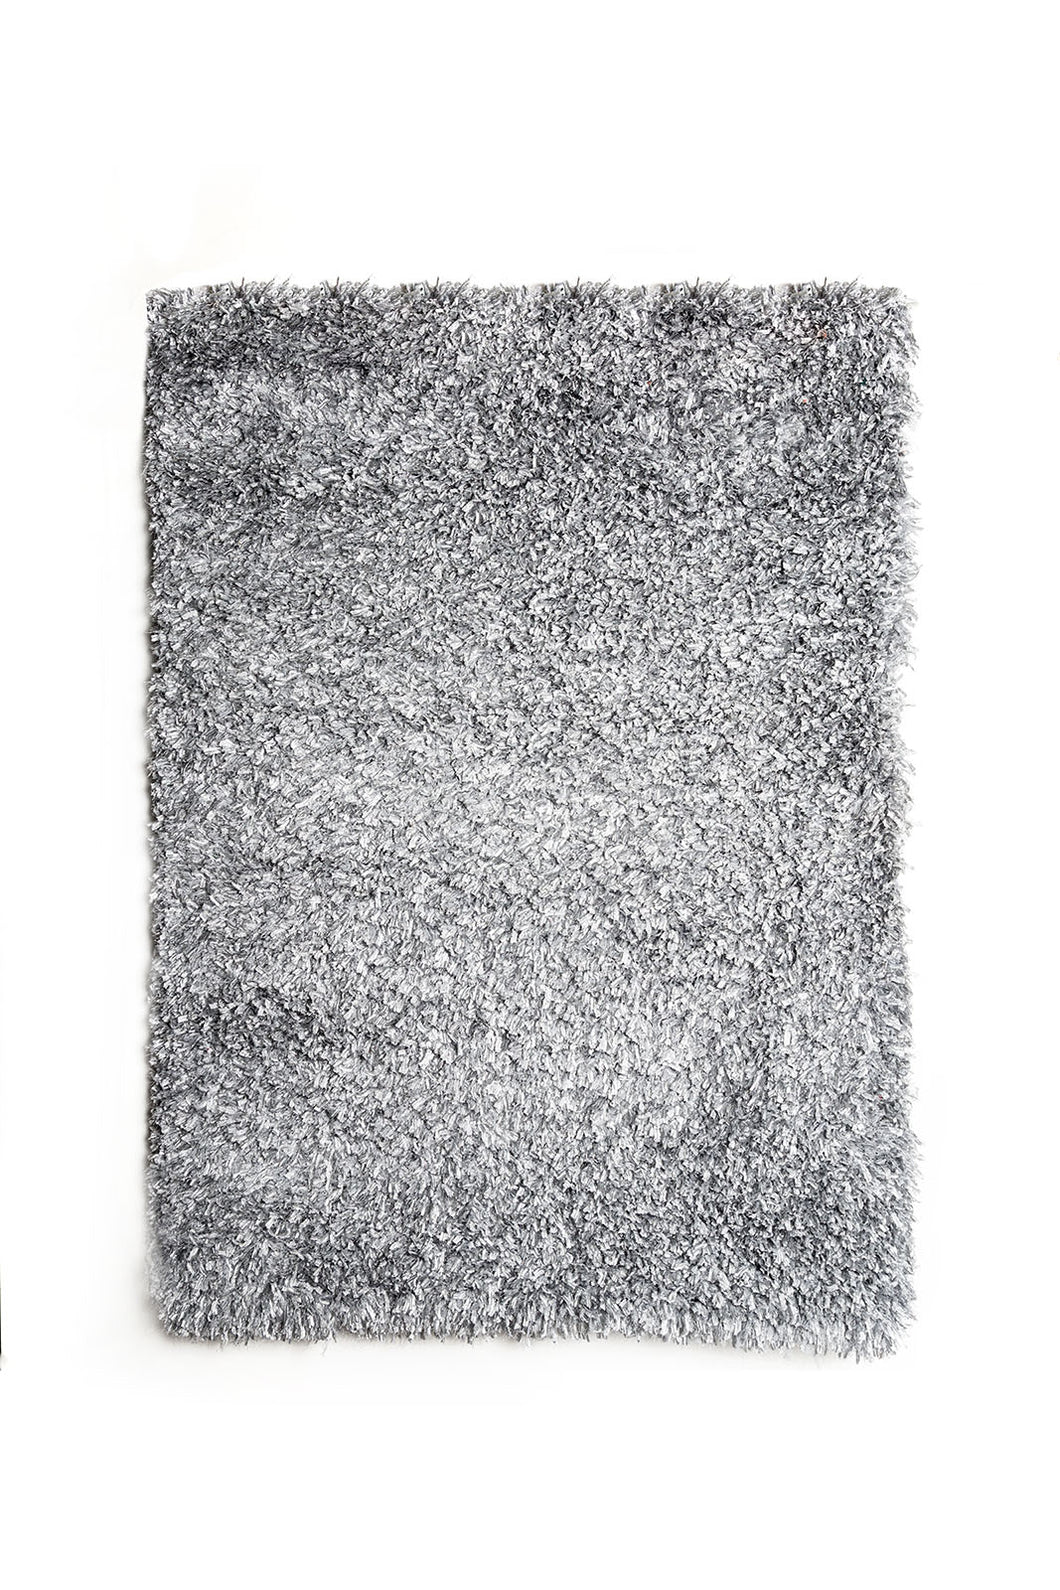 Annmarie Silver 5' X 8' Area Rug